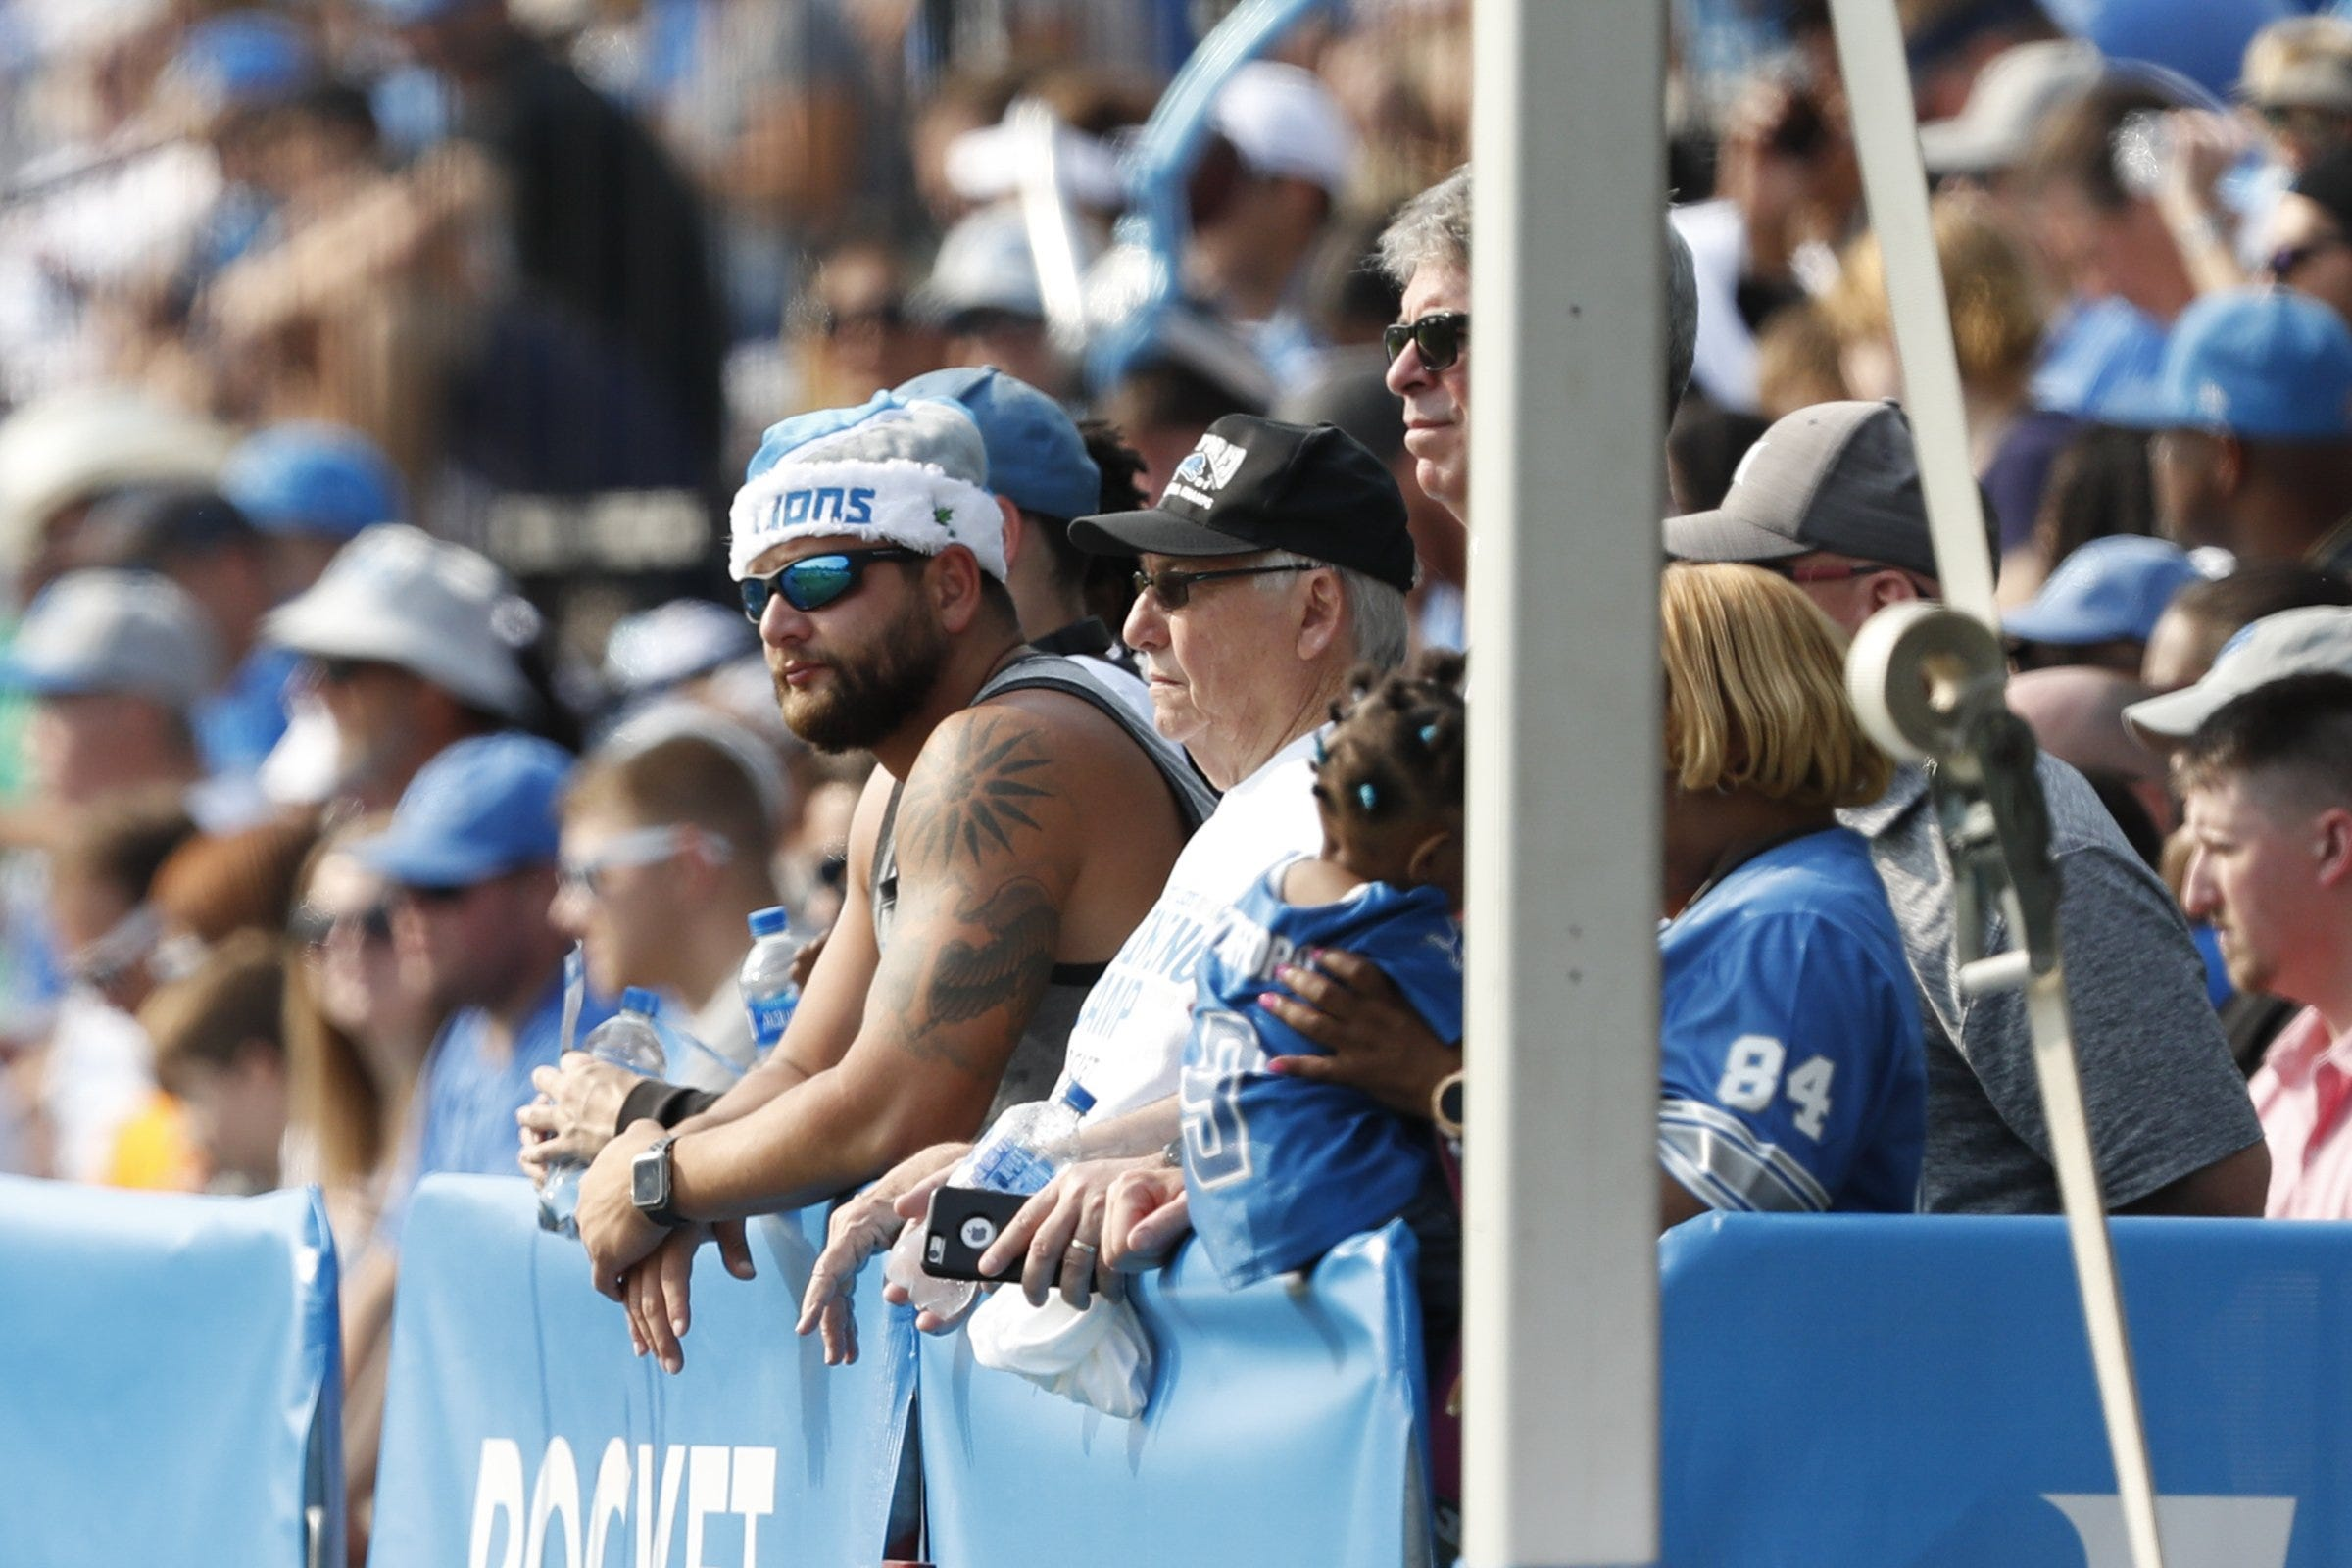 Detroit Lions considering moving training camp to West...